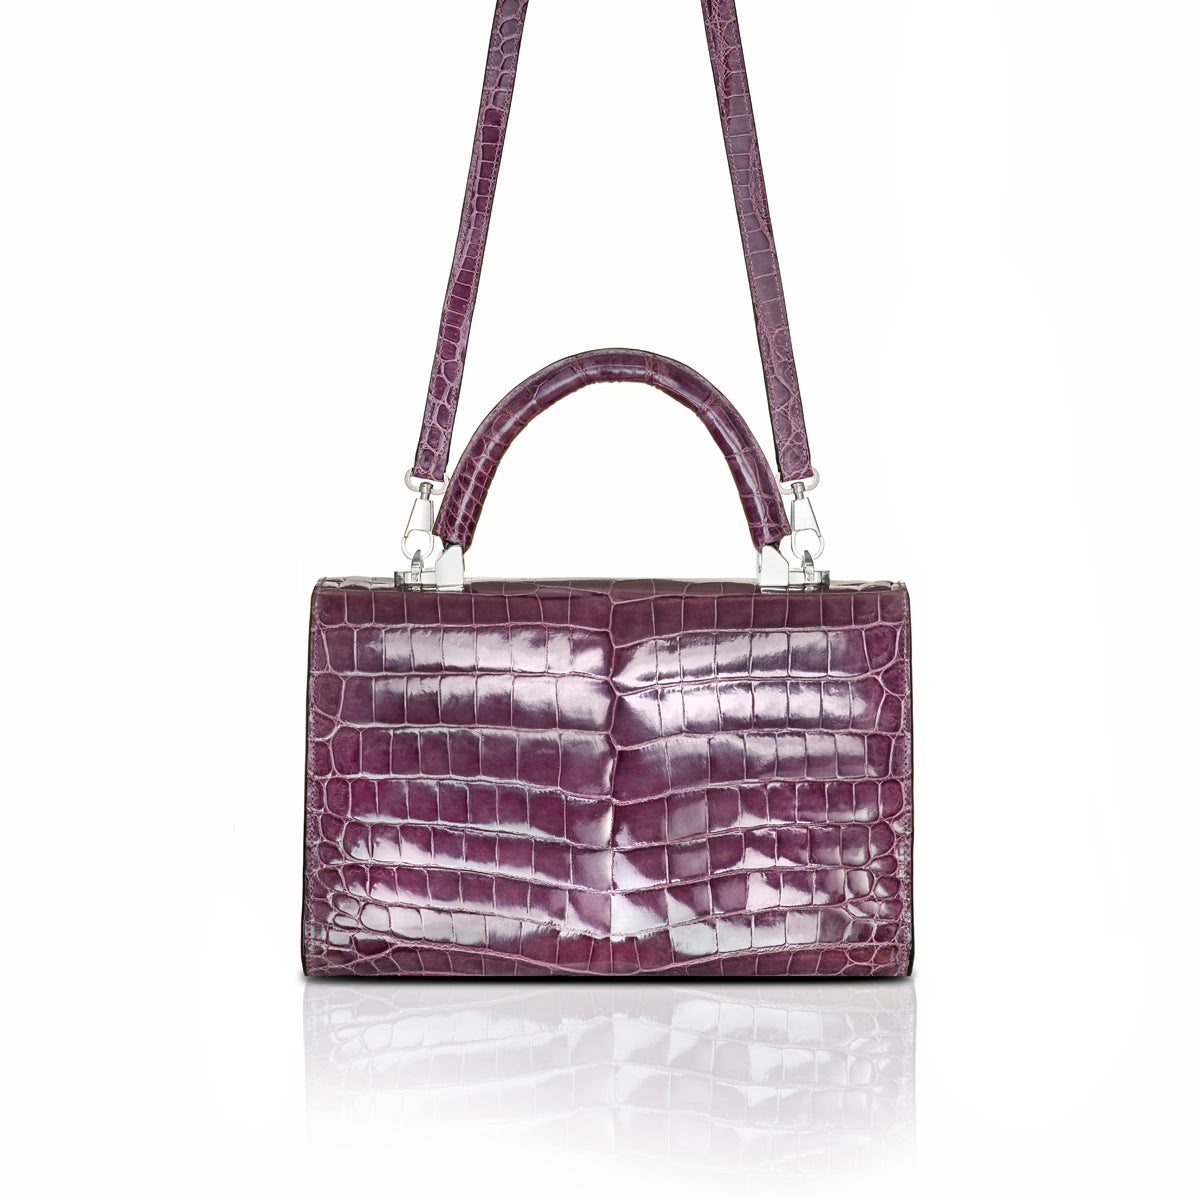 Top Handle 2.5 Small - Lilac Alligator